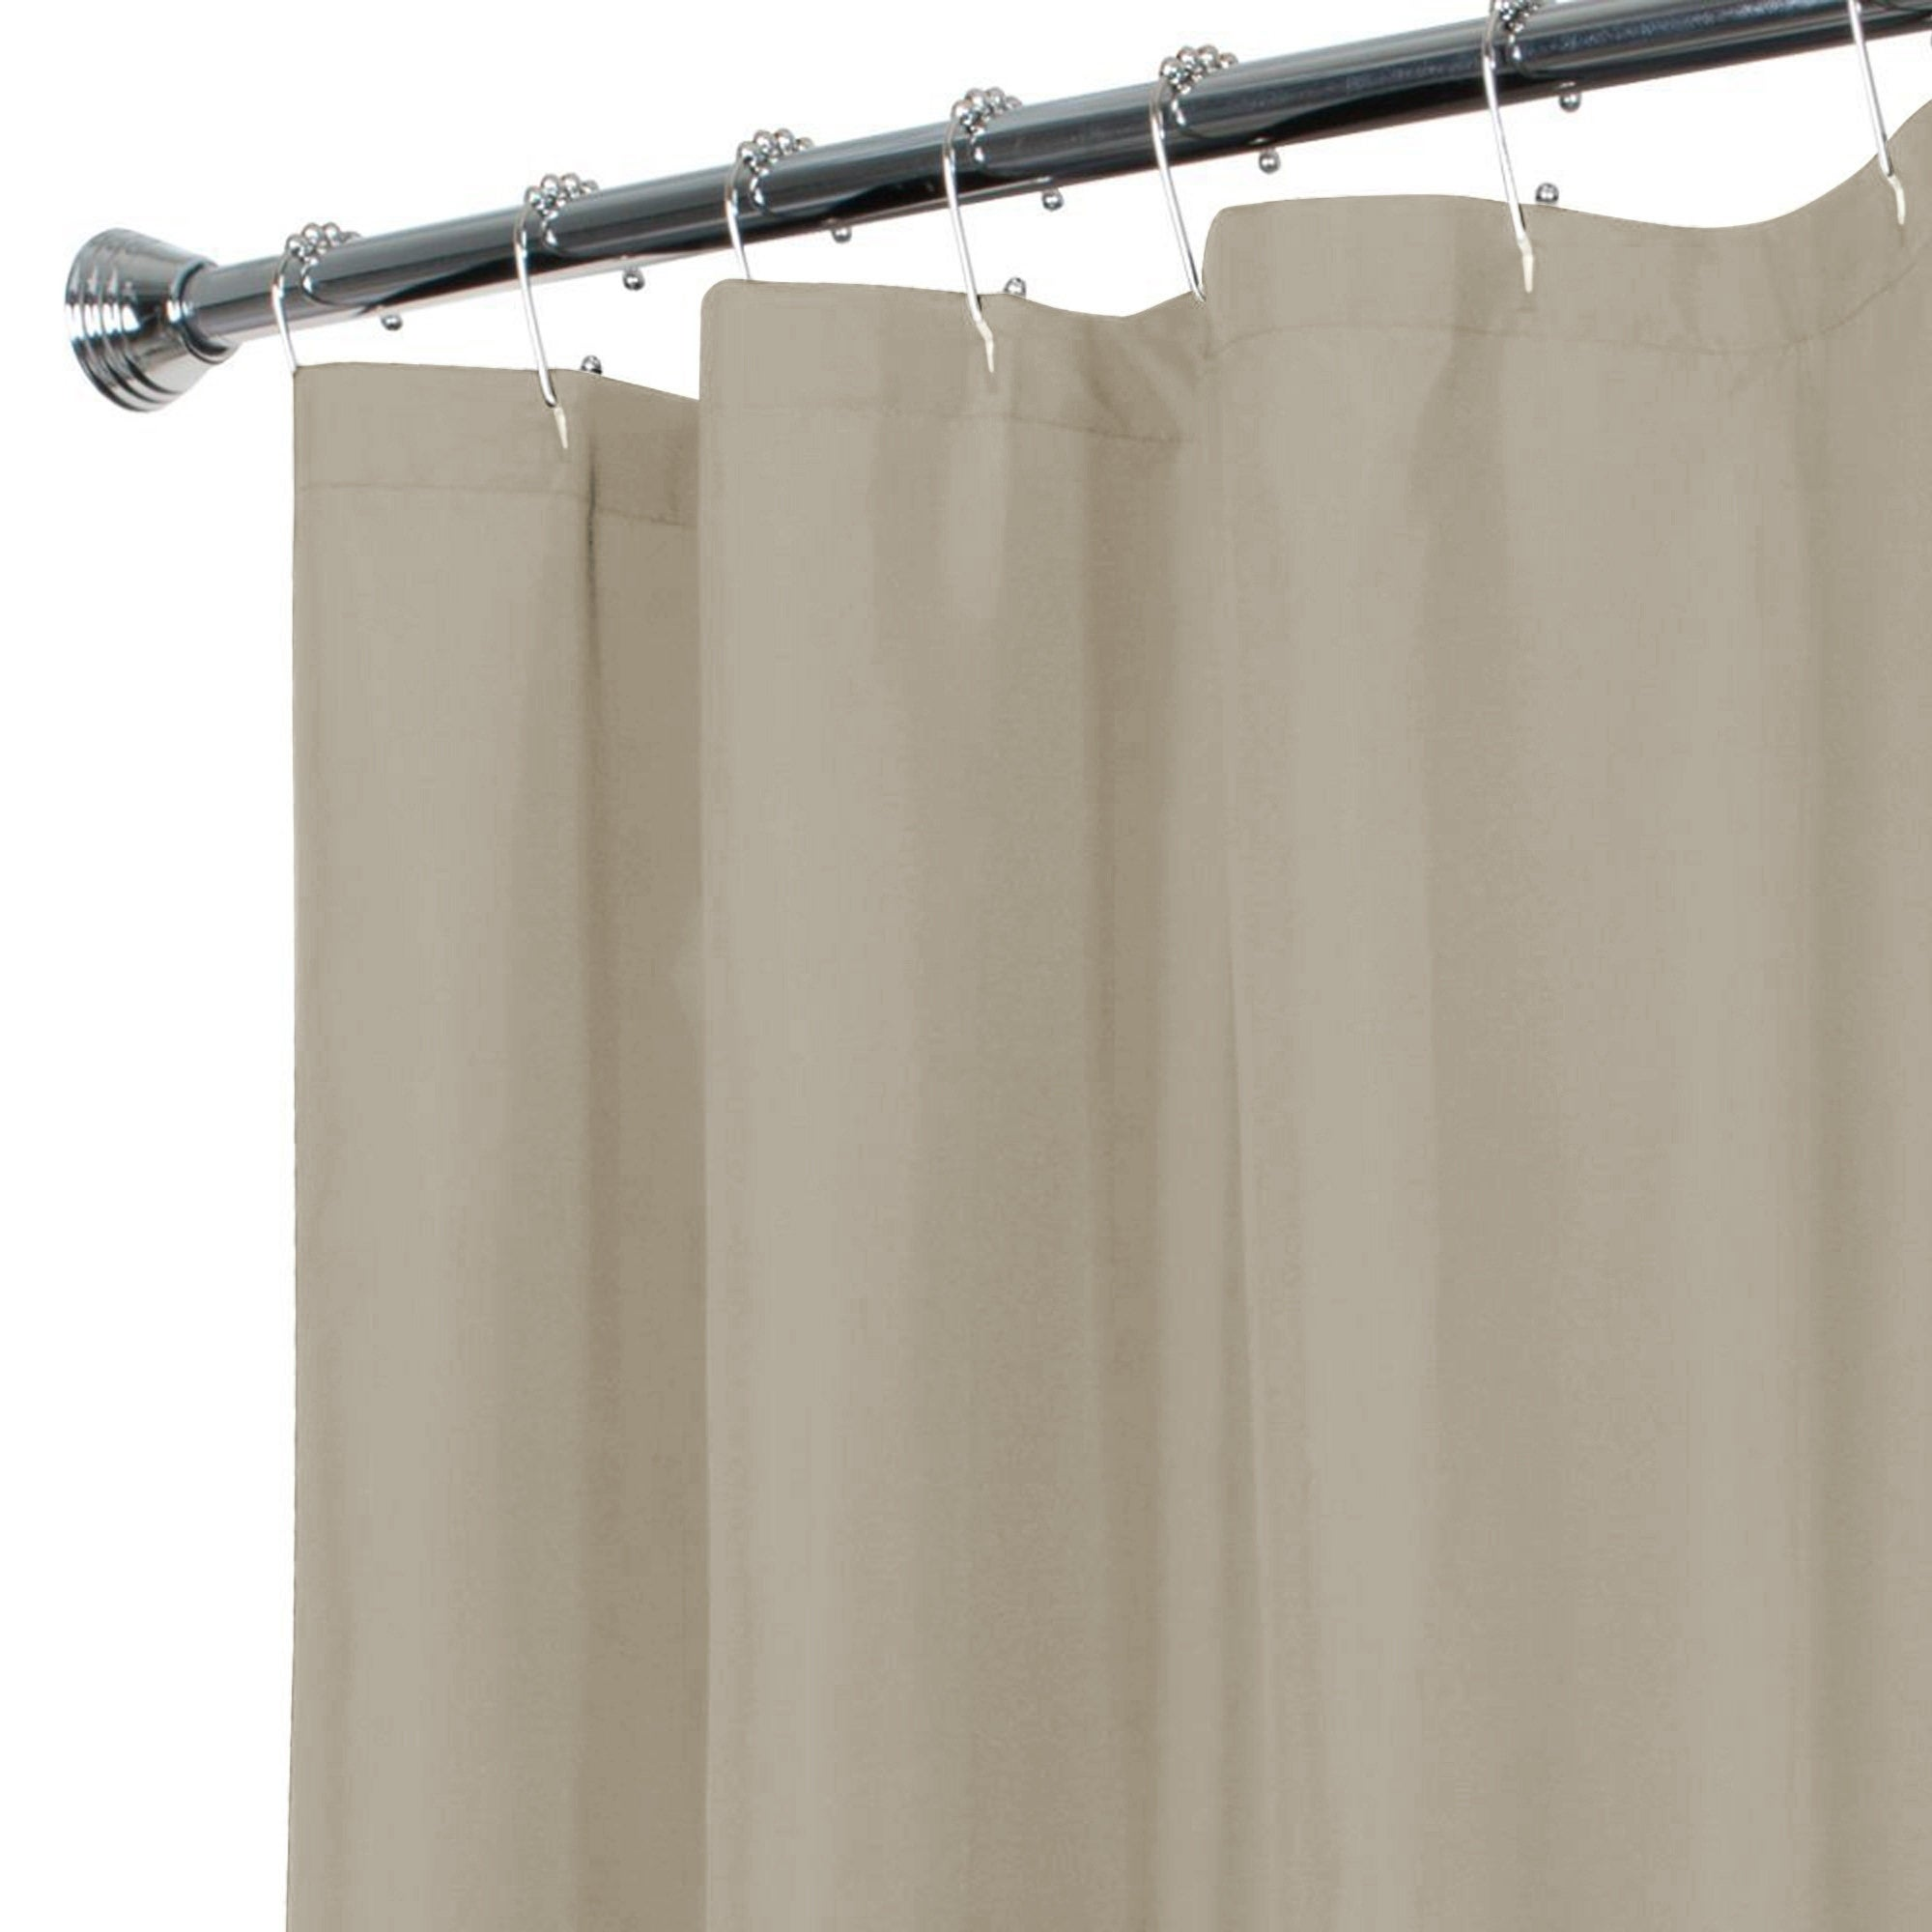 Shop Maytex Water Repellent Fabric Shower Curtain Or Liner